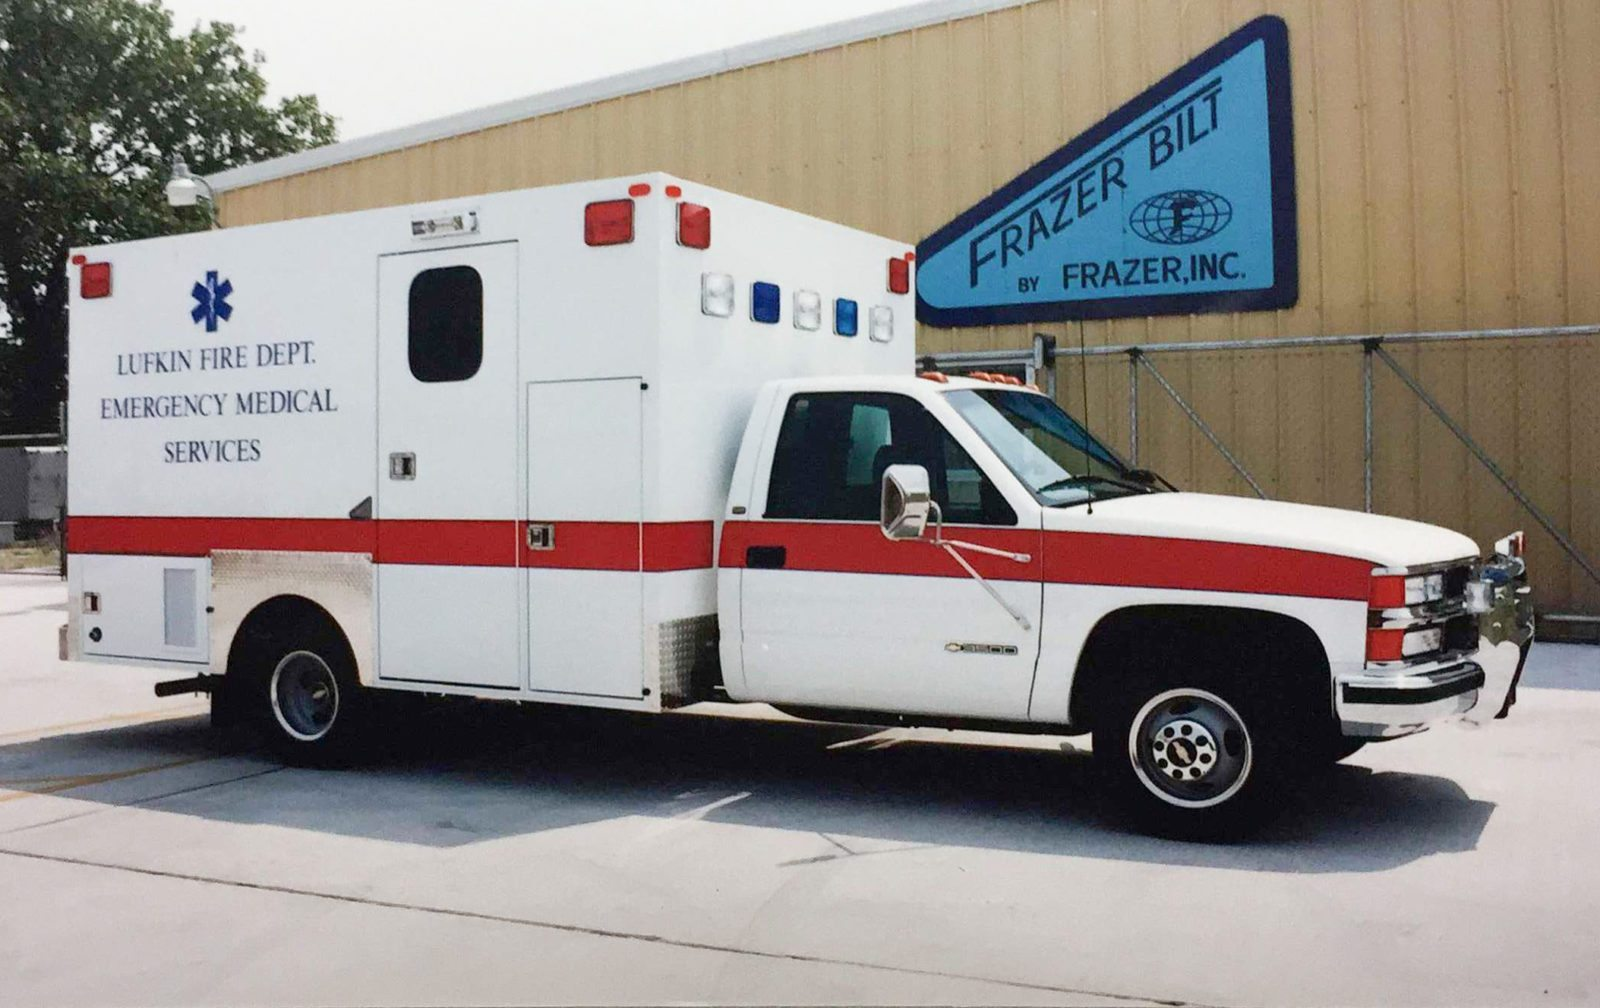 EMS vehicles